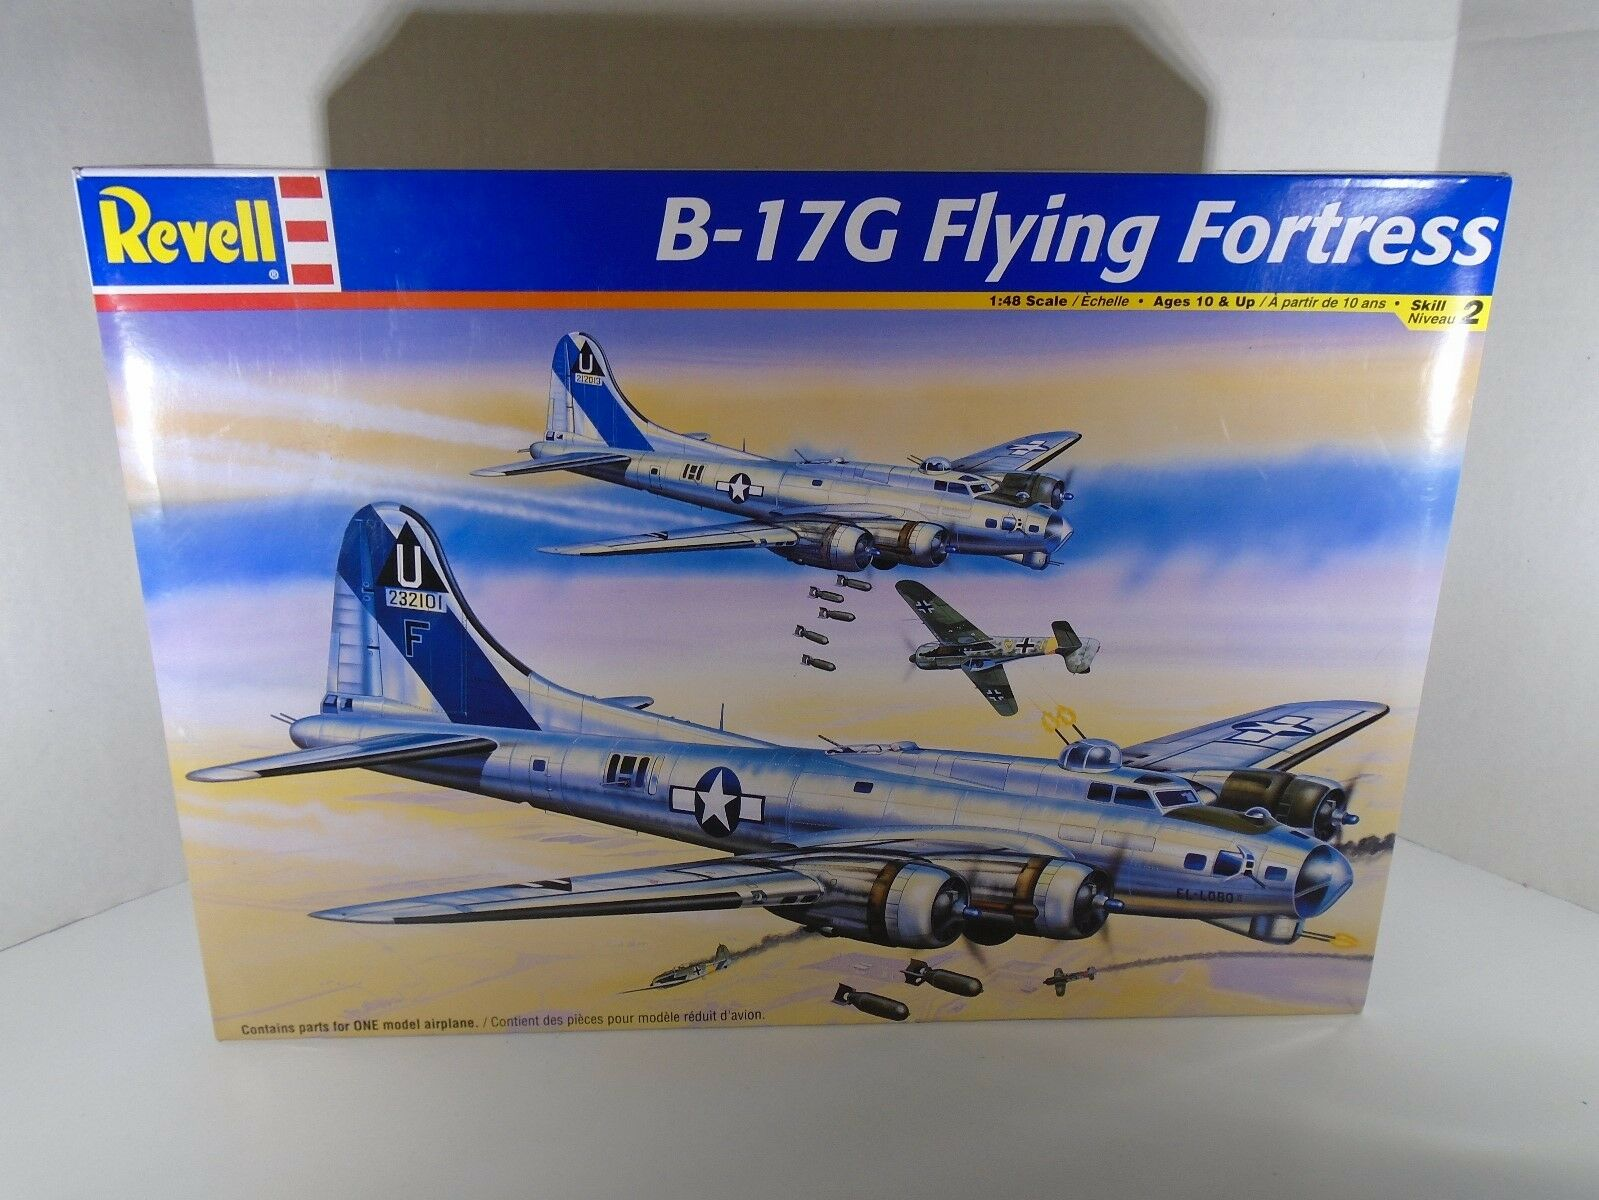 2004 REVELL--B 17G FLYING FORTRESS AIRPLANE--MODEL KIT (LOOK) 1 48 SCALE